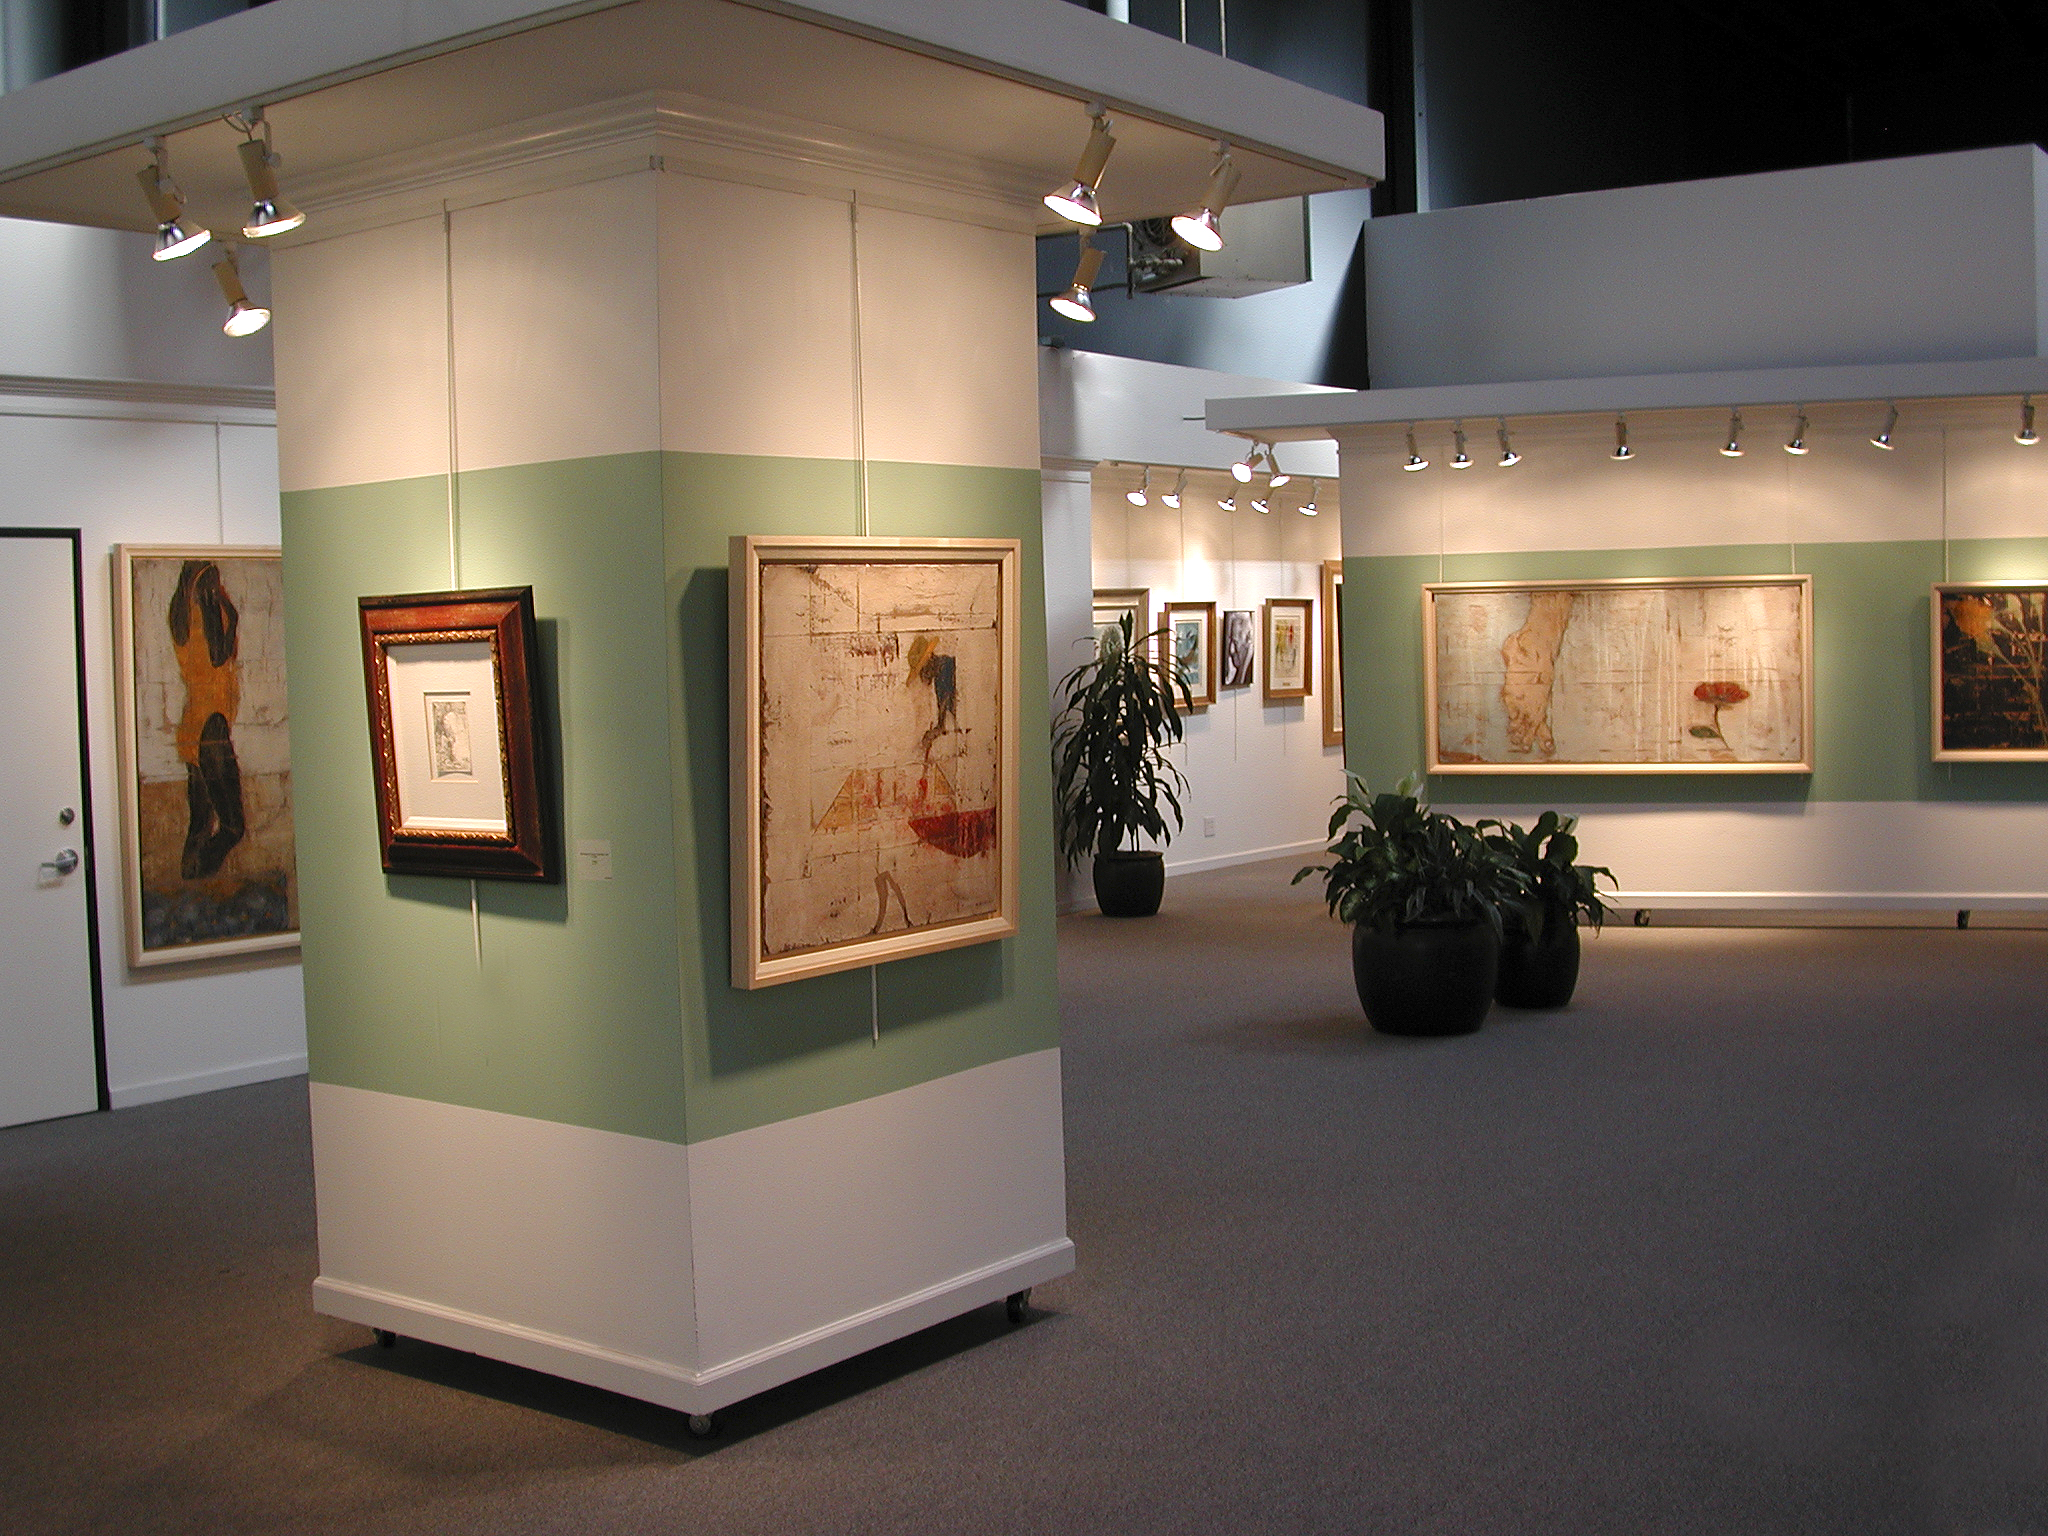 San Francisco Exhibition, 2002